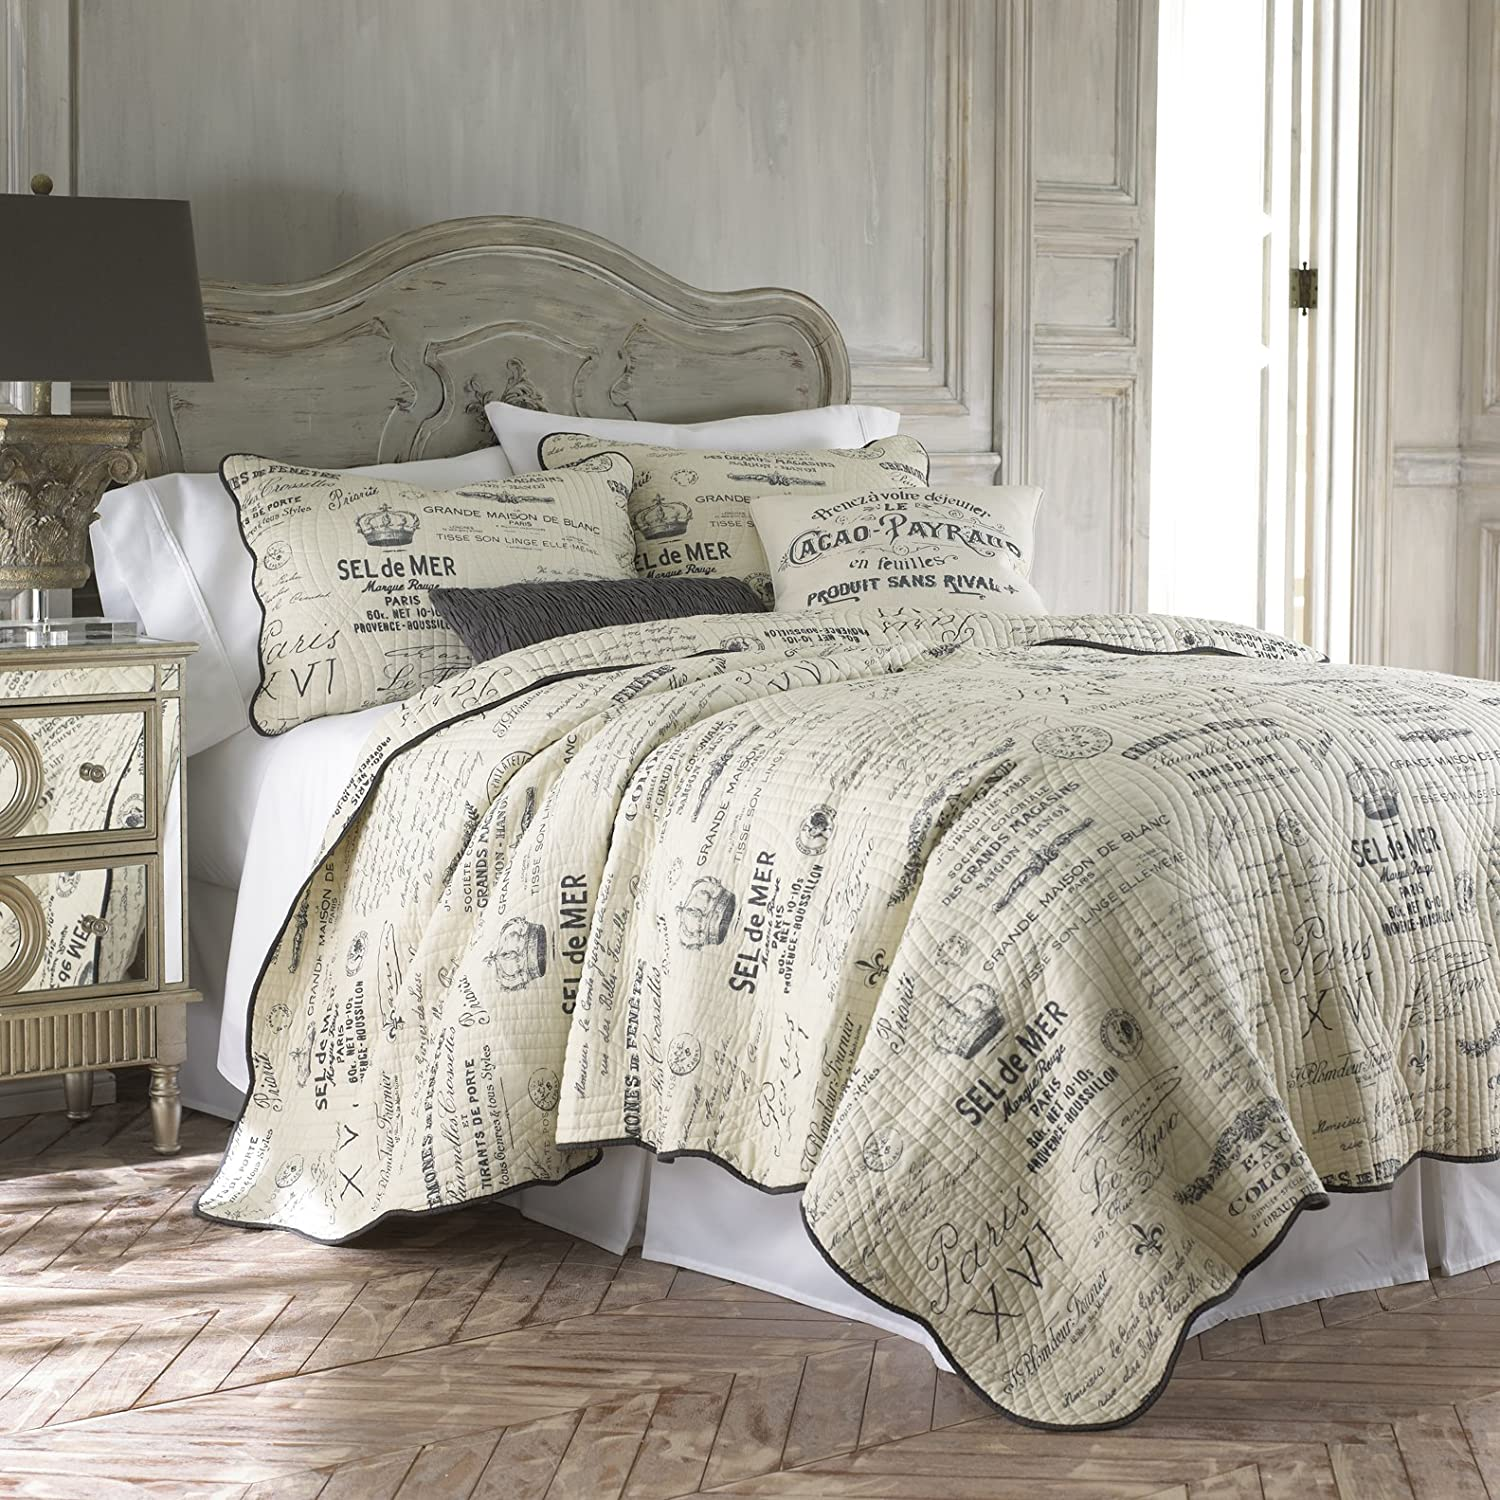 stunning cover of stitched ruffle scallop target full duvet size covers white